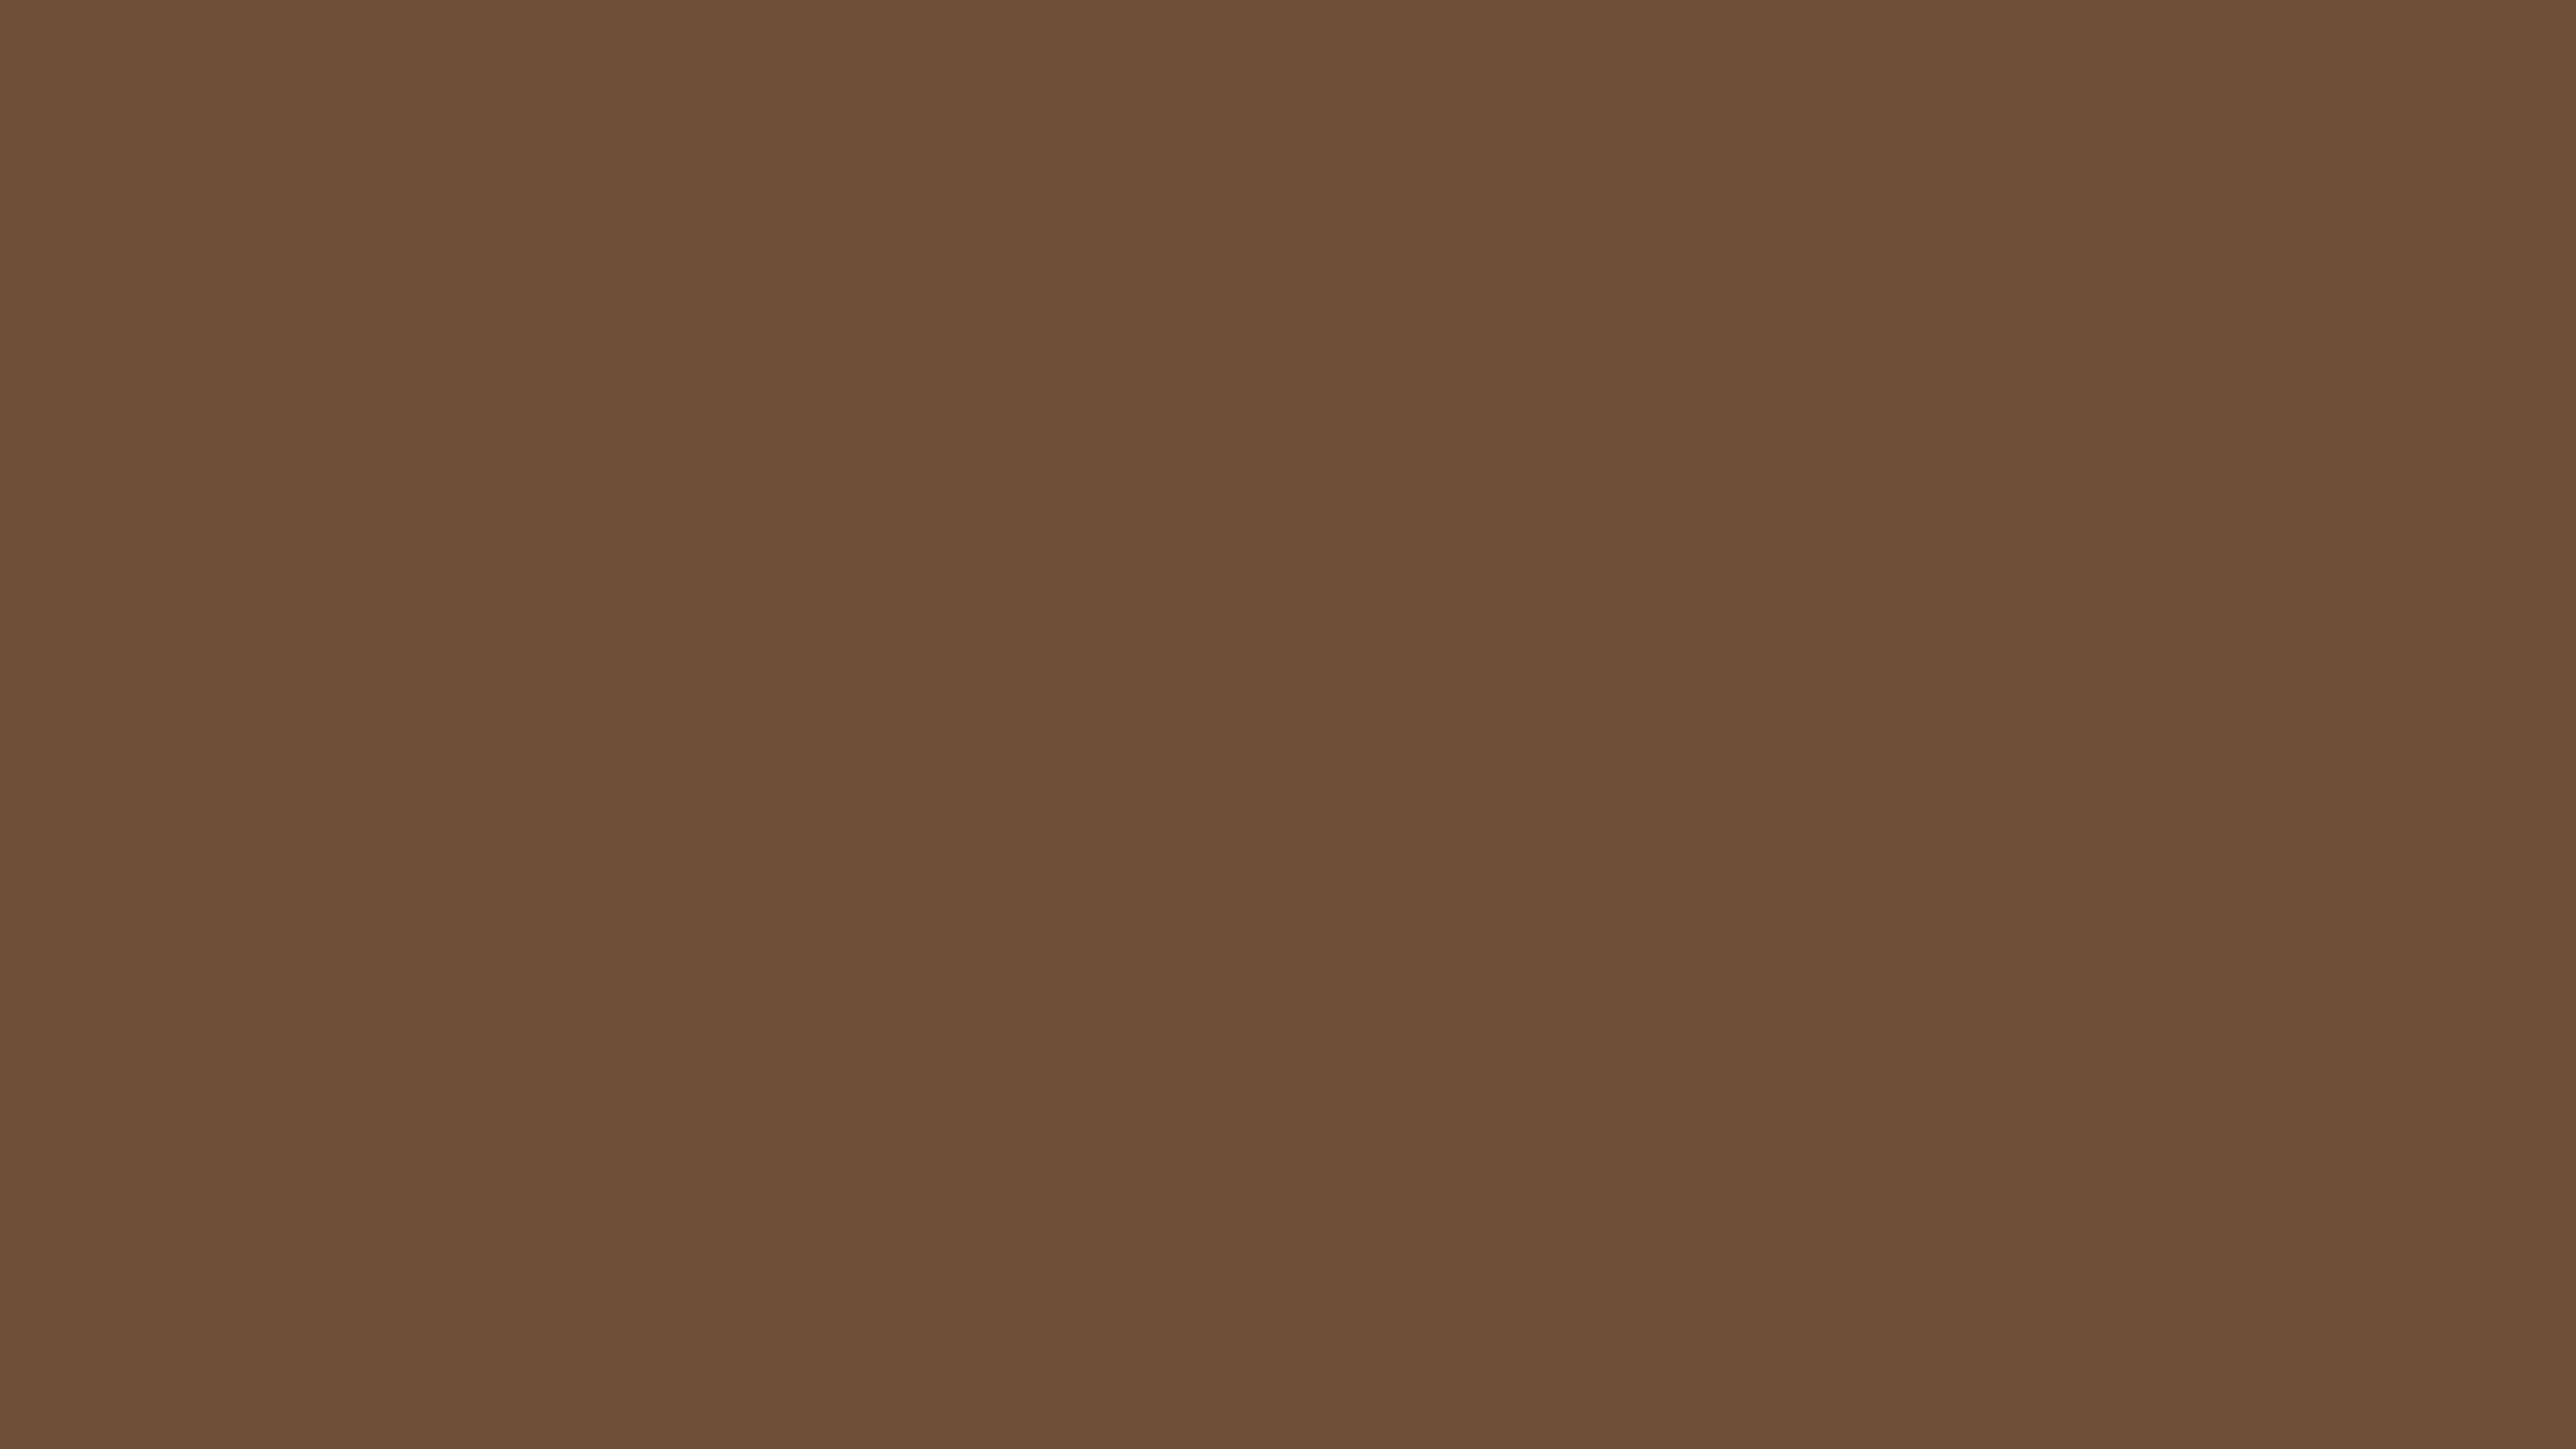 7680x4320 Coffee Solid Color Background